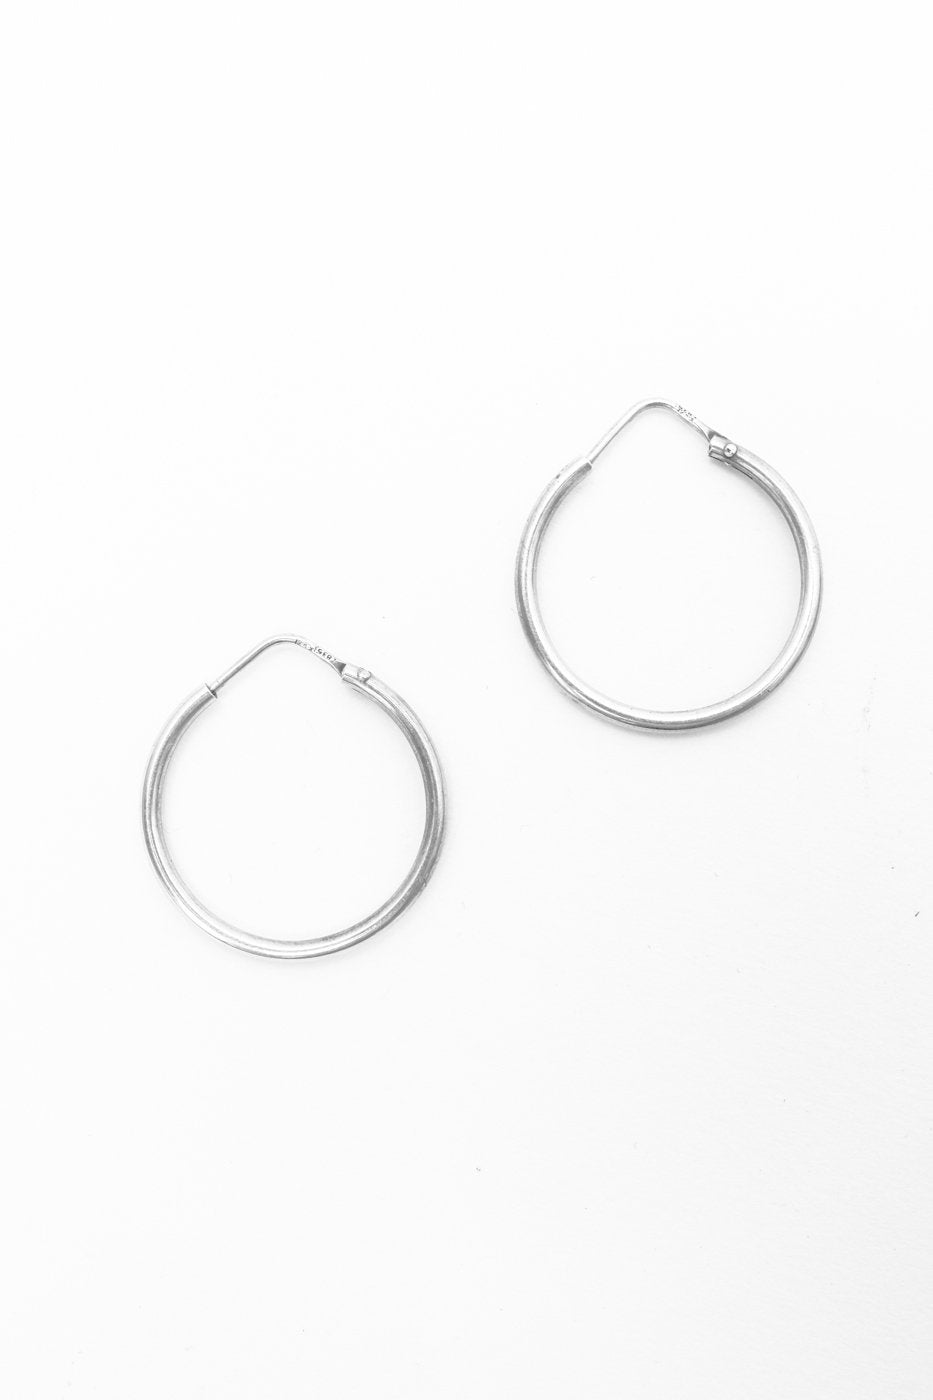 0466_SILVER 835 VINTAGE HOOP EARRINGS // M